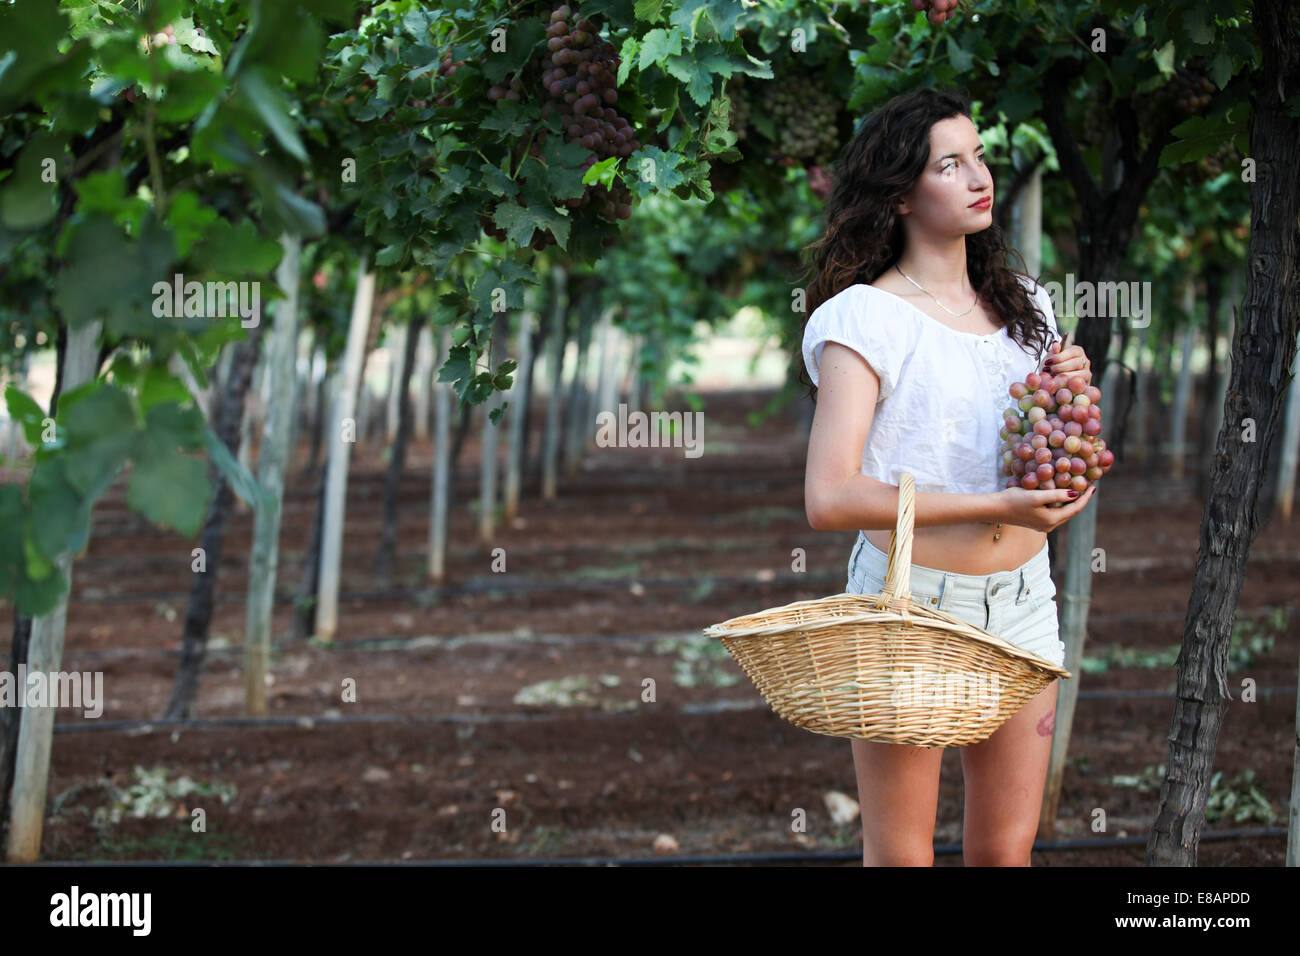 Young woman standing among vines, holding grapes - Stock Image